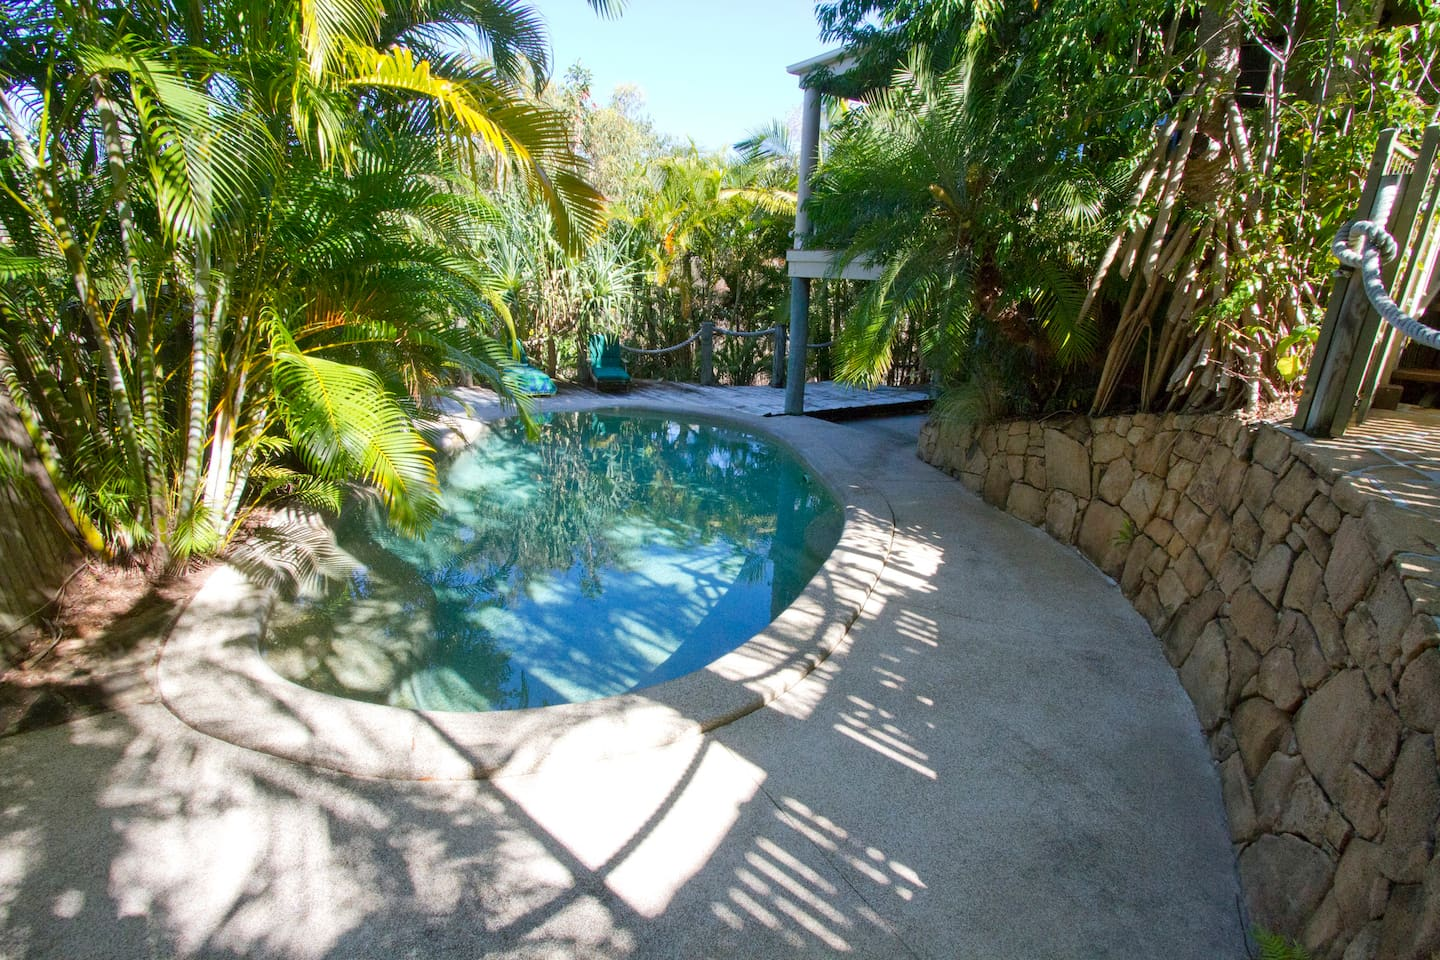 Whether you prefer a refreshing dip in the pool or to just listen to the birds, read a book or relax, this area is ideal. And it's private.